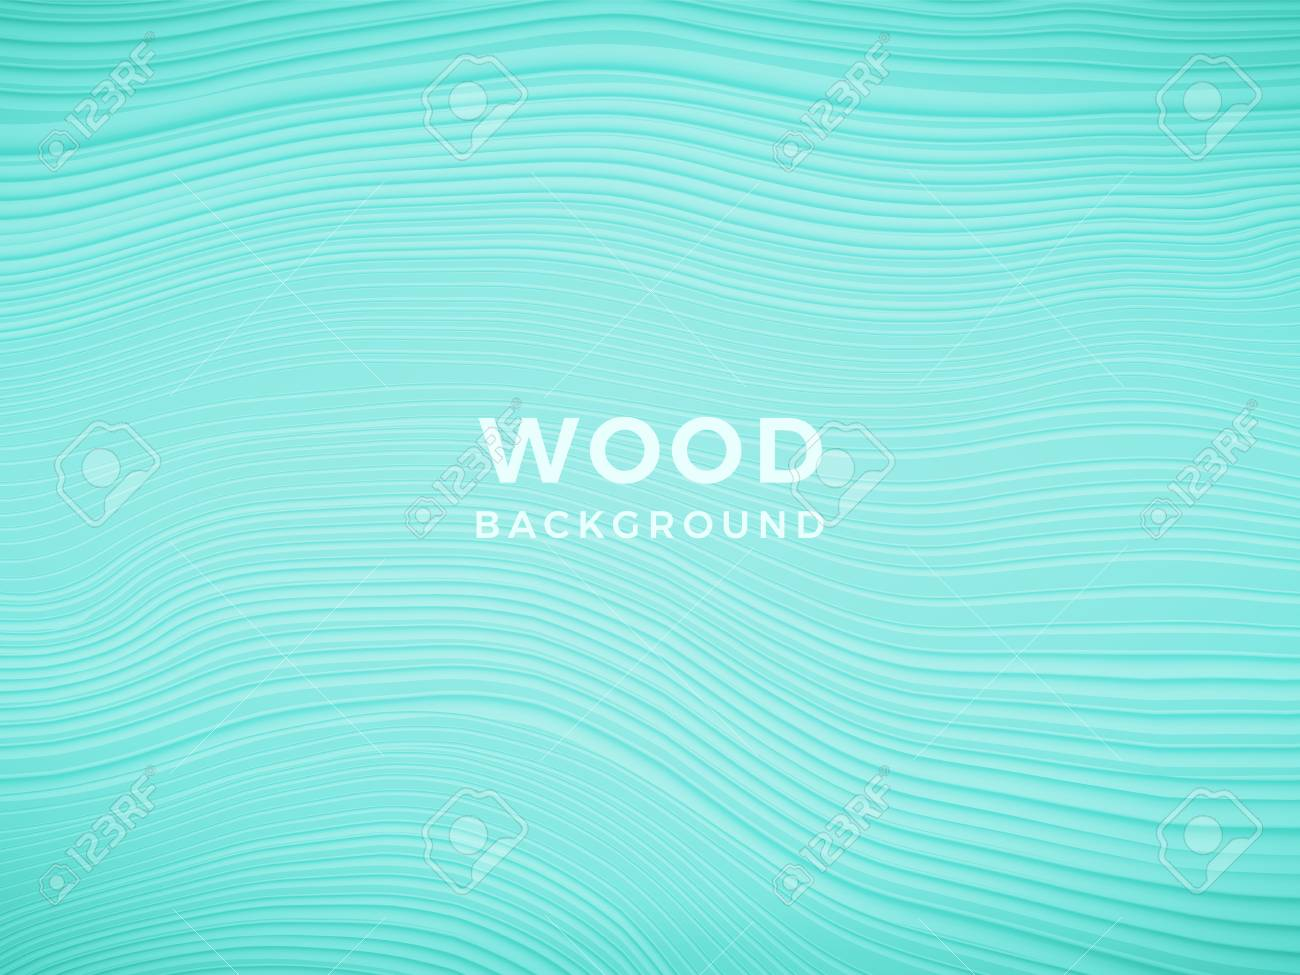 Wood Texture Background Grunge Retro Vintage Wooden Texture